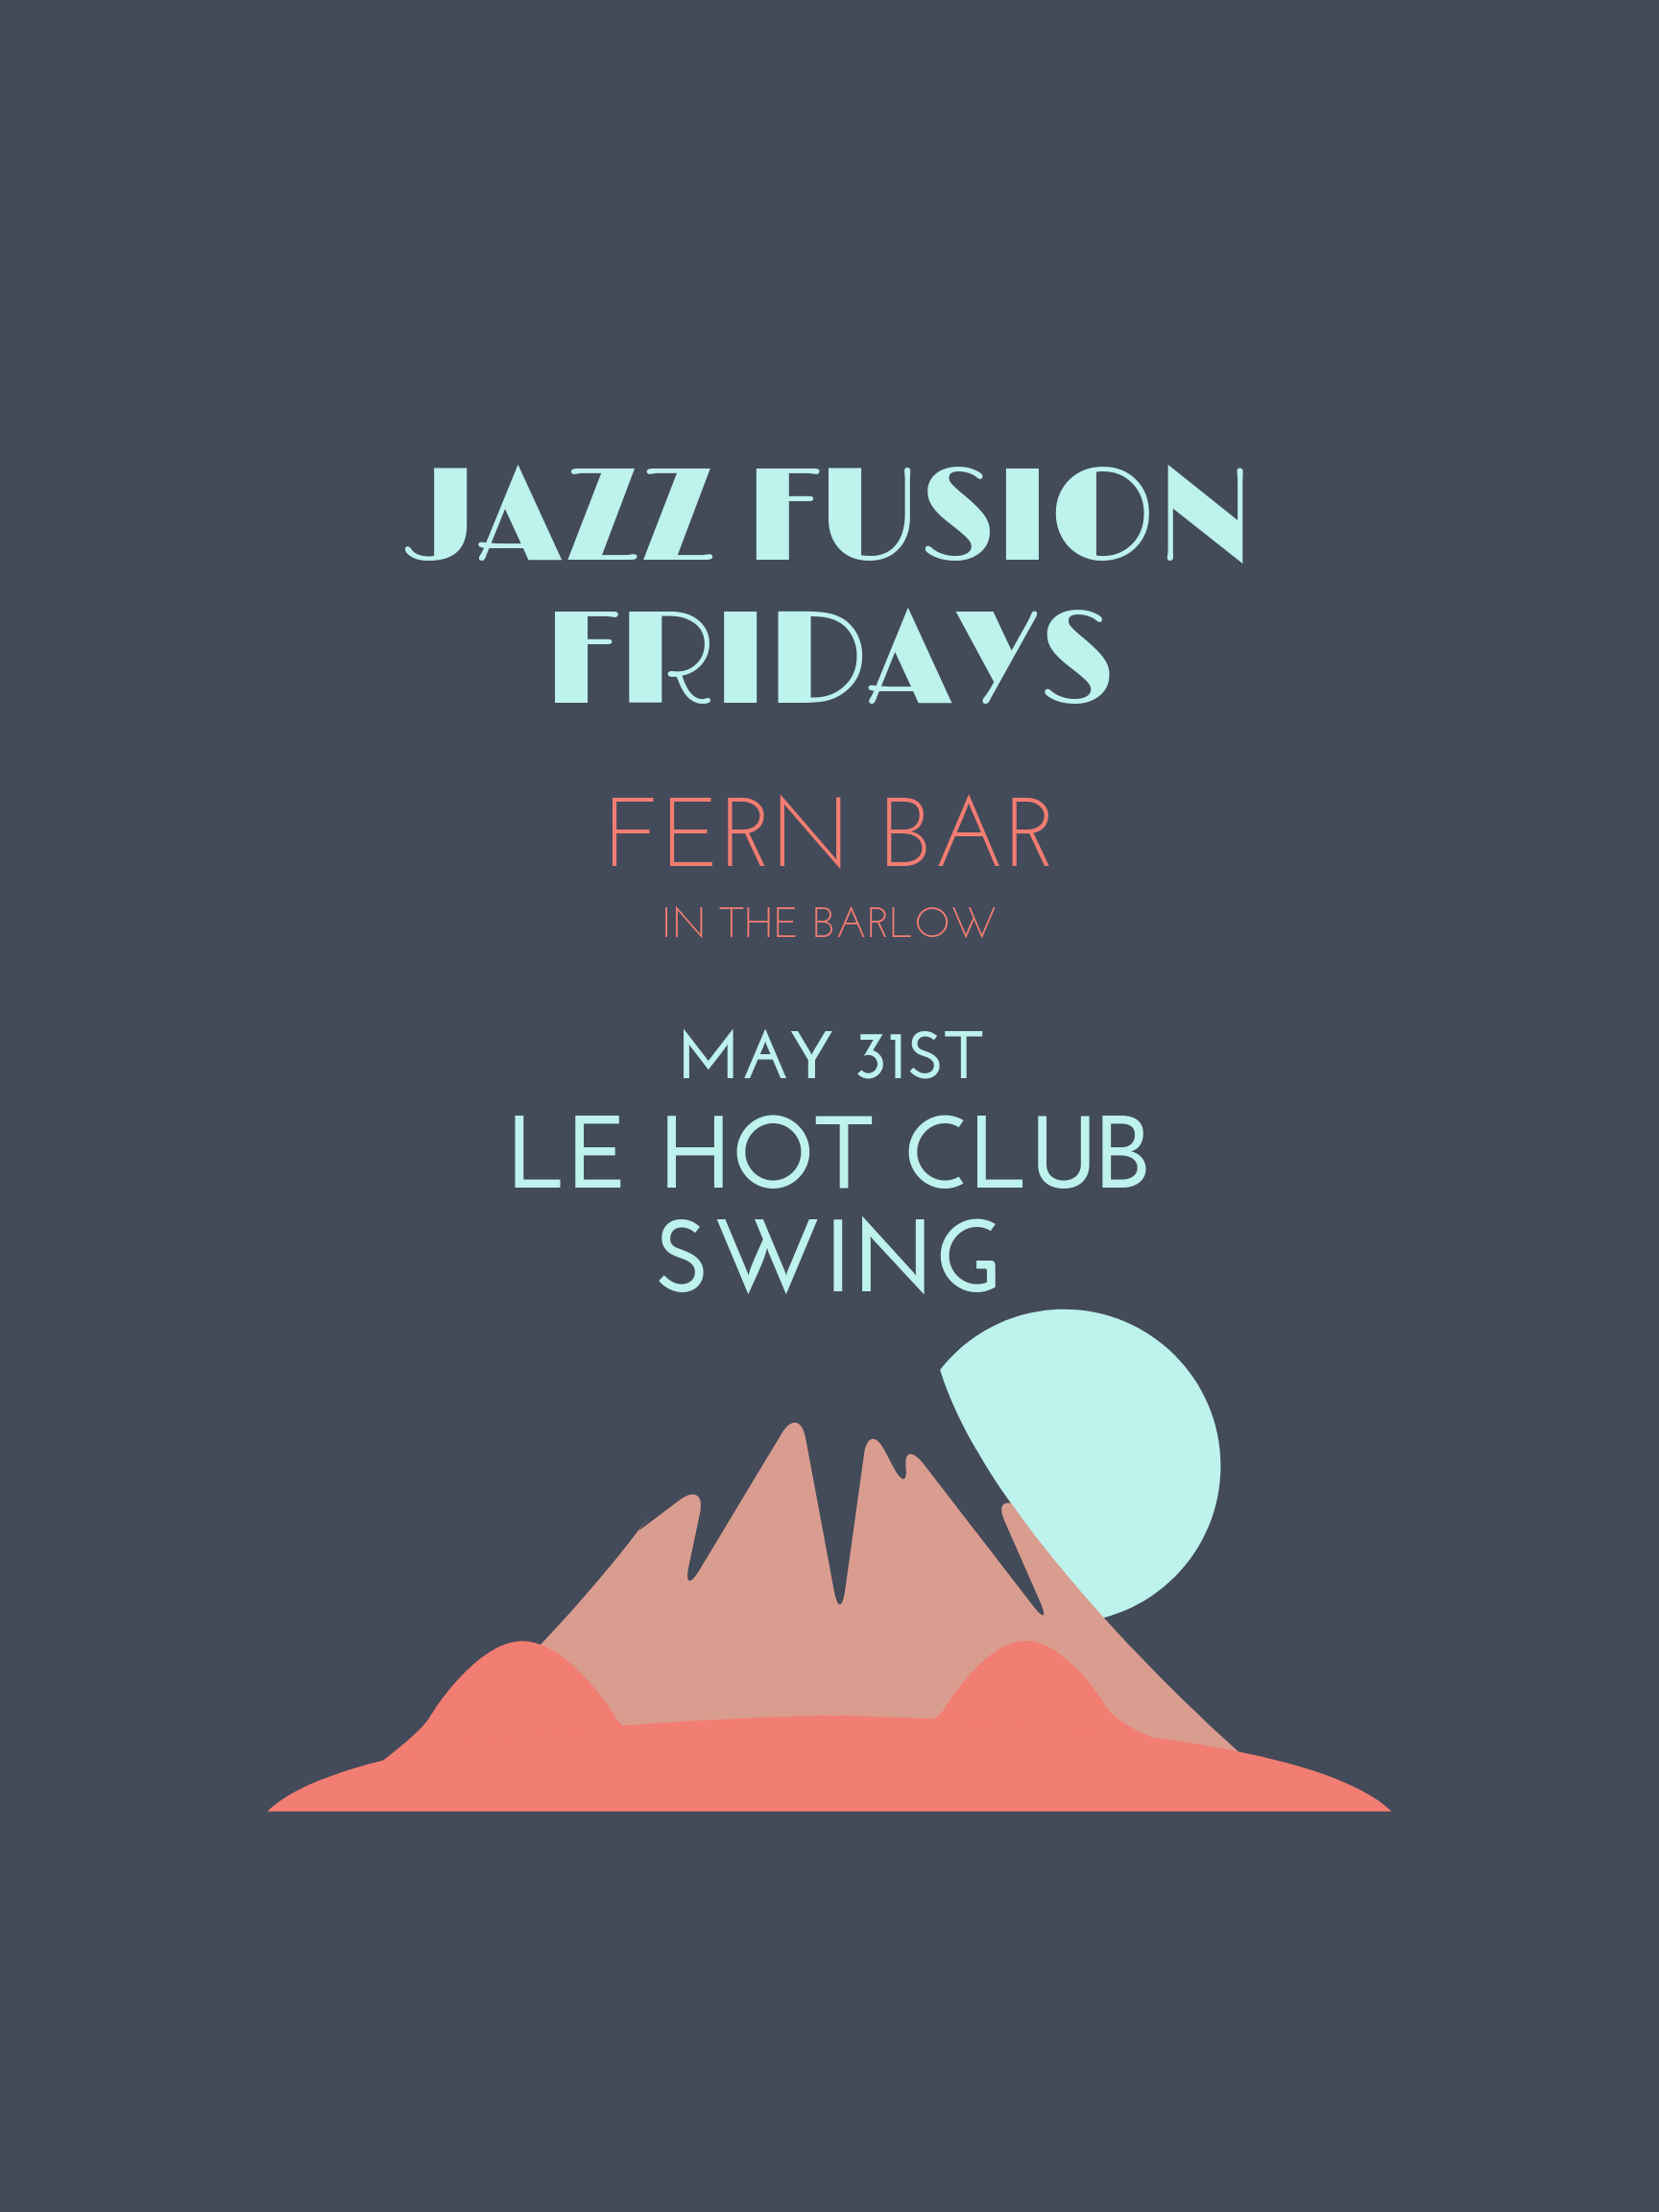 JAZZ FUSION FRIDAYS_POSTER_IG STORY (2).png